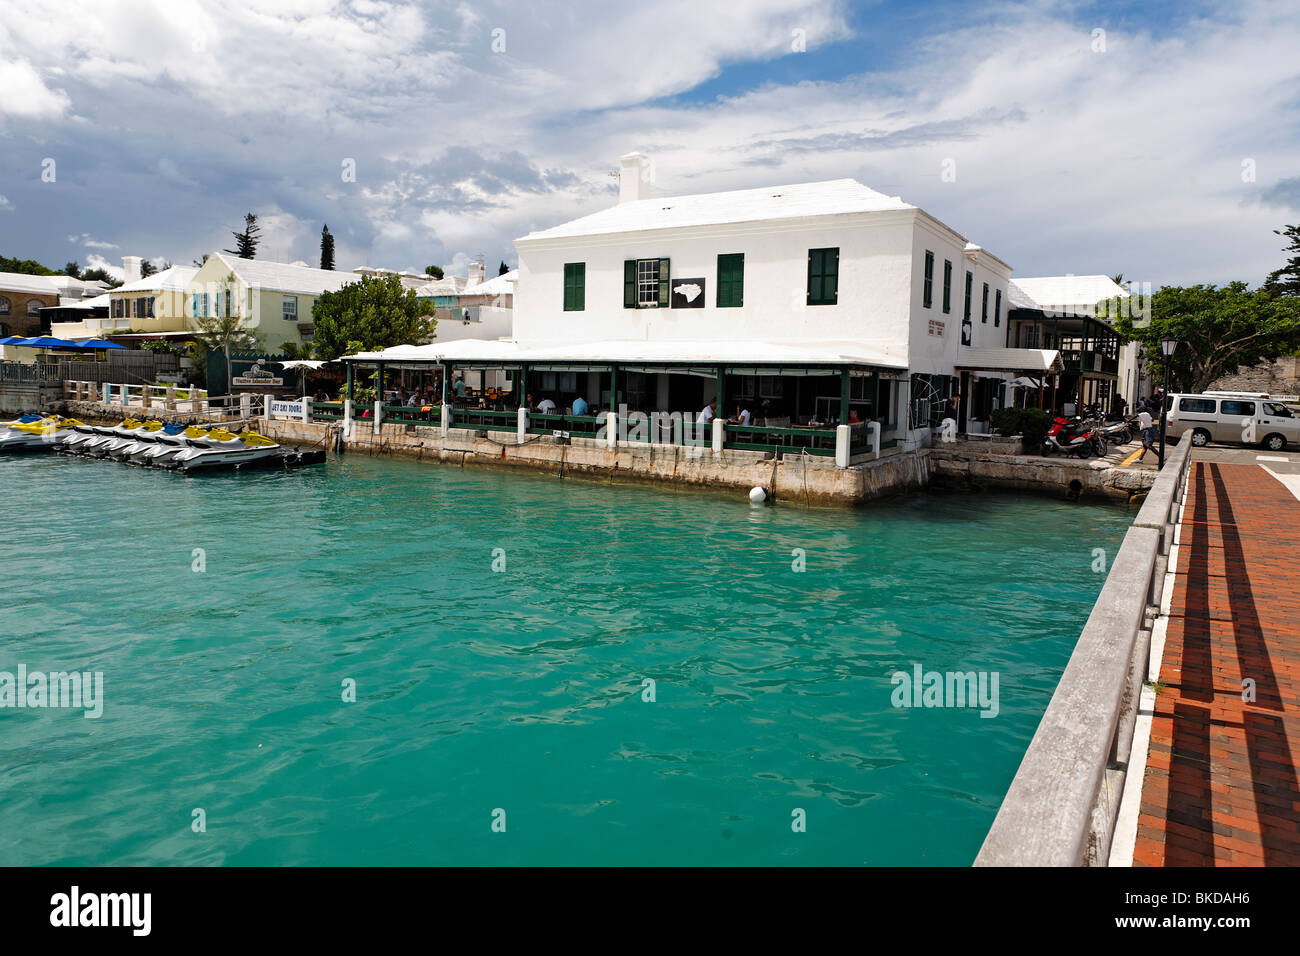 Bayside View of the White Horse Restaurant and Pub, St George, Bermuda - Stock Image